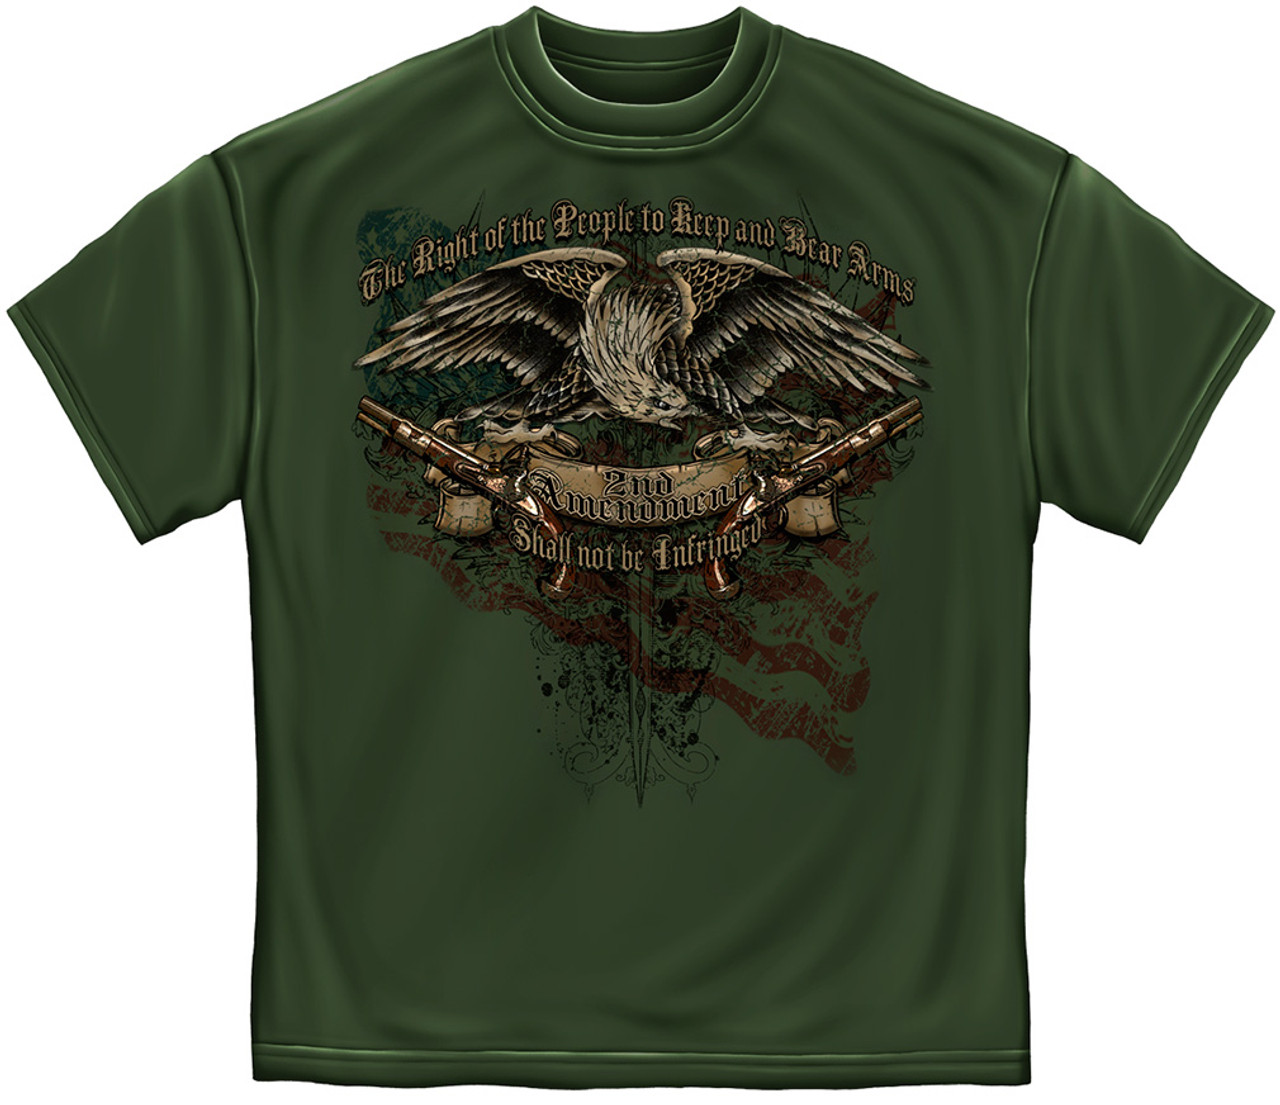 """**(NEW-TRENDY-OFFICIALLY-LICENSED,""""2ND-ADMENDMENT-SHALL-NOT-BE-INFRINGED & THE-RIGHT-OF-THE-PEOPLE-TO-KEEP/BEAR-ARMS"""",NICE-GRAPHIC-PRINTED-PREMIUM-DOUBLE-SIDED-TEES:)**"""